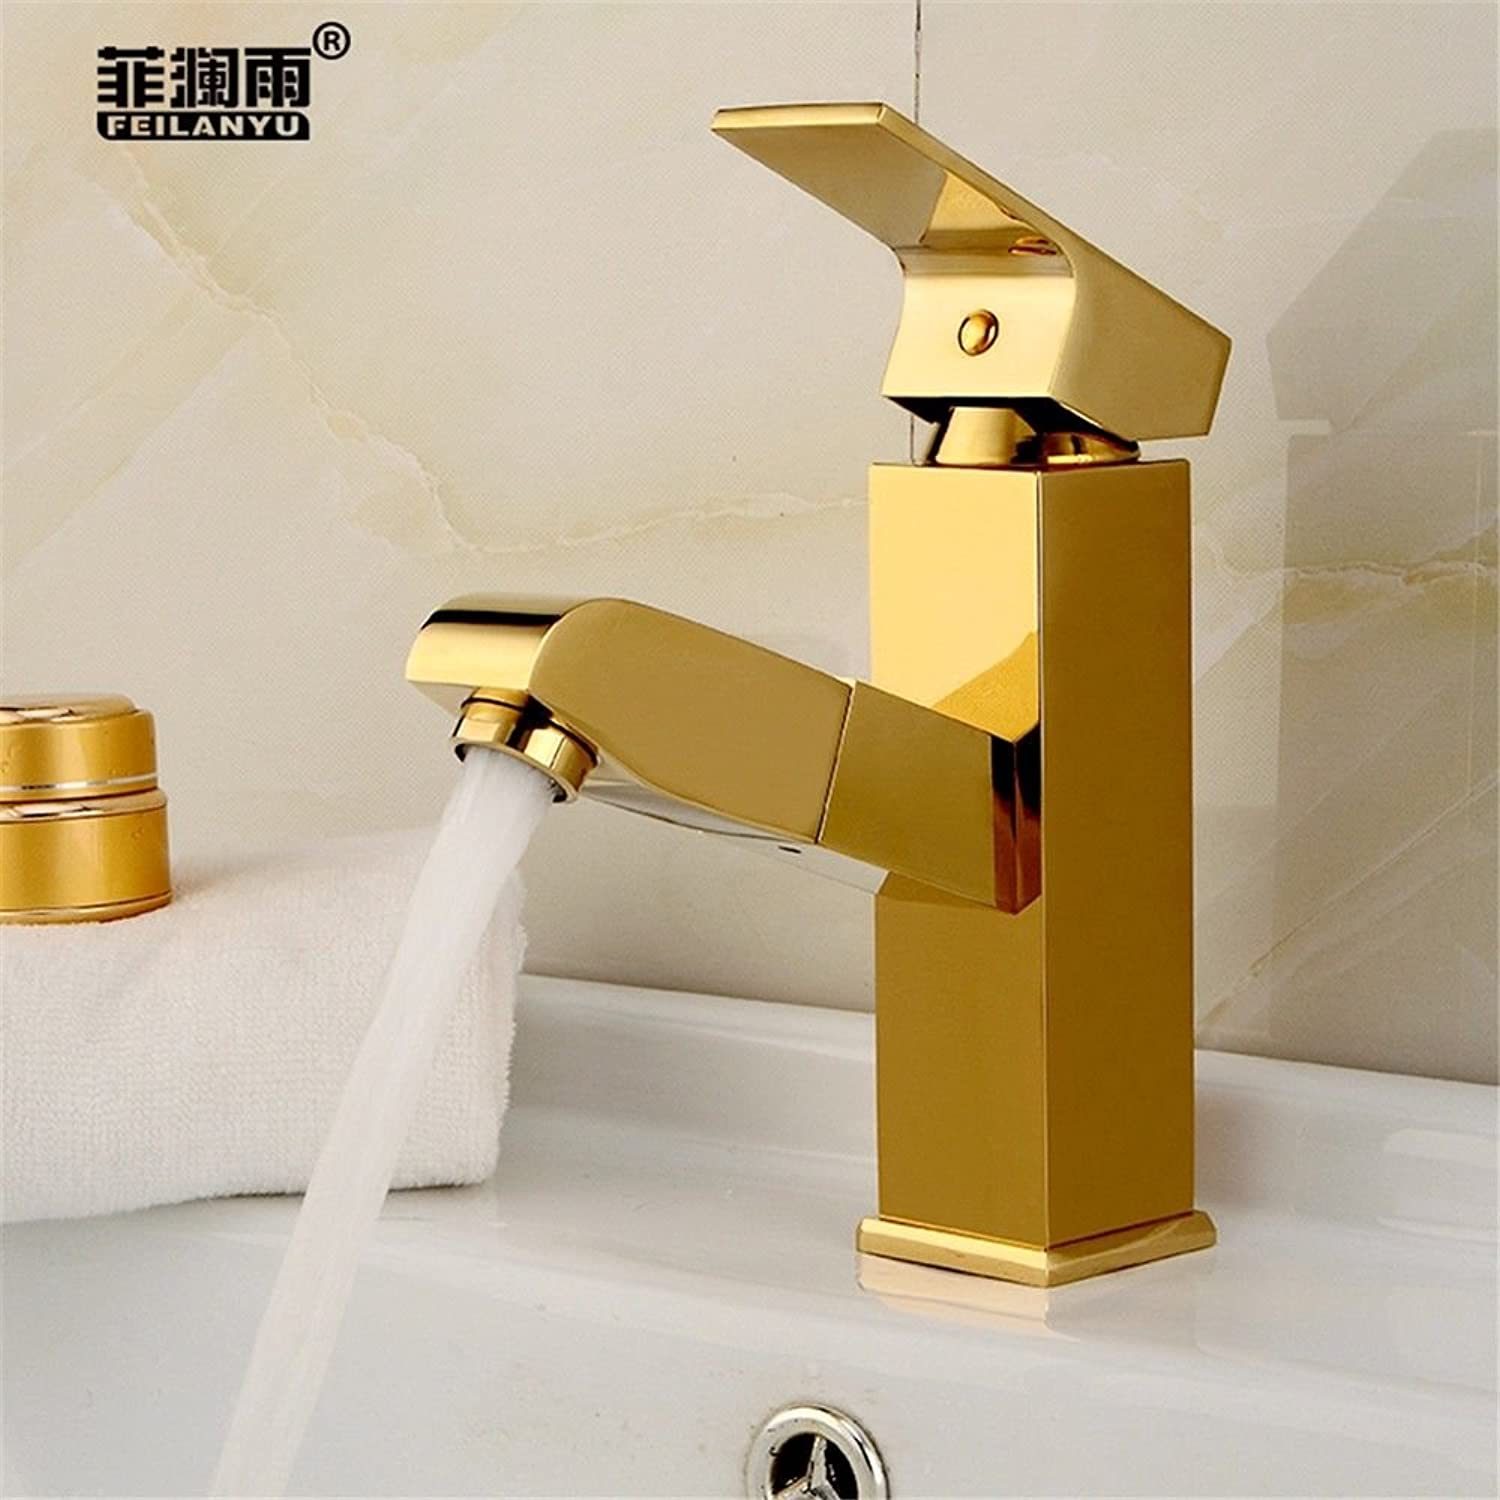 Lalaky Taps Faucet Kitchen Mixer Sink Waterfall Bathroom Mixer Basin Mixer Tap for Kitchen Bathroom and Washroom gold Stainless Steel Pull-Type Hot and Cold Expansion